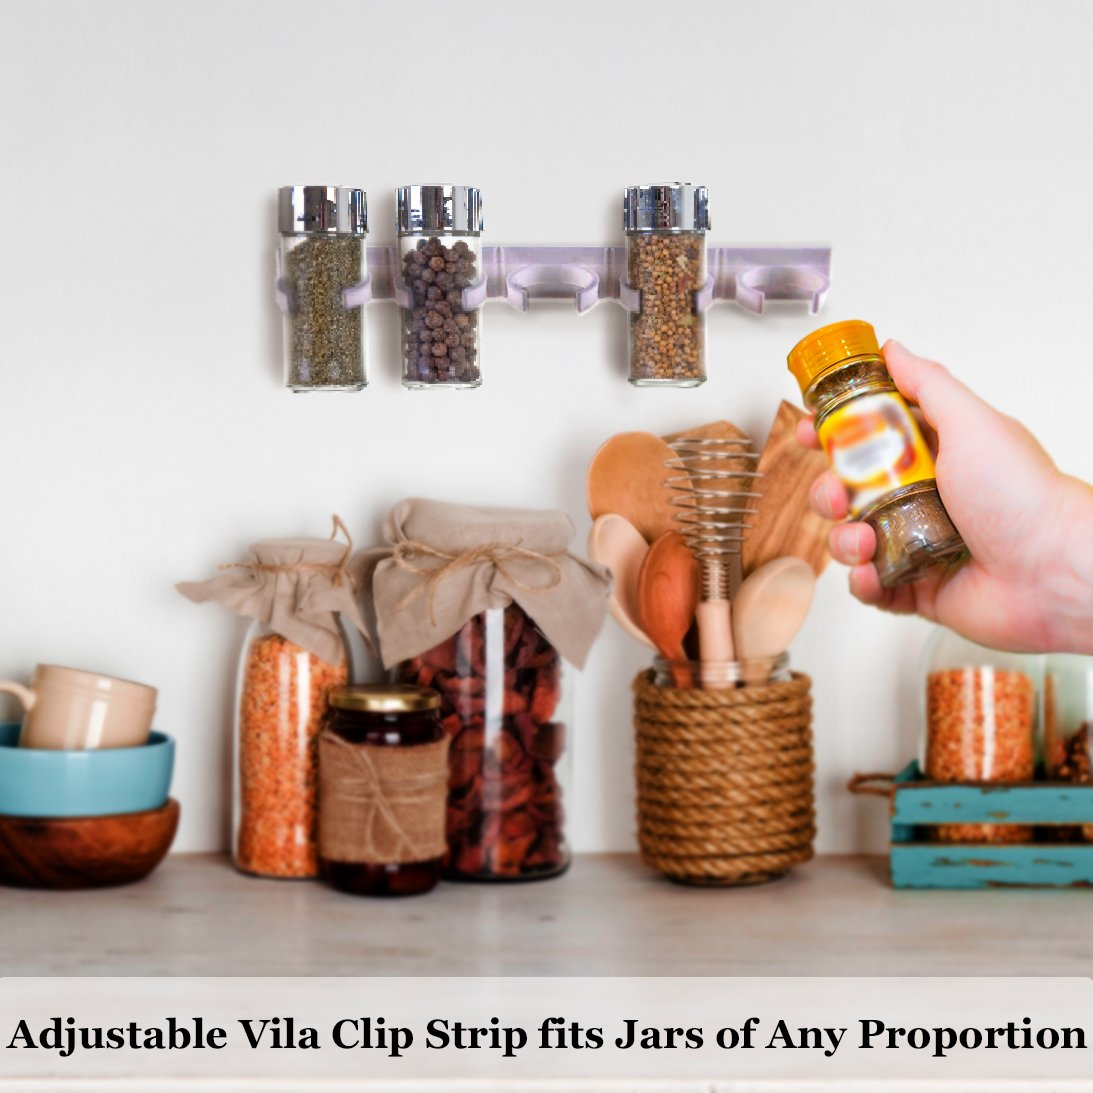 Space-saving Wall Mount Spice Organizer - 4 Clip Strips for Plastic Jars by Vila - Arranges multi-brands Spice Jars of different sizes - Mounts Securely with Top-Quality Adhesive Tape - Convenient